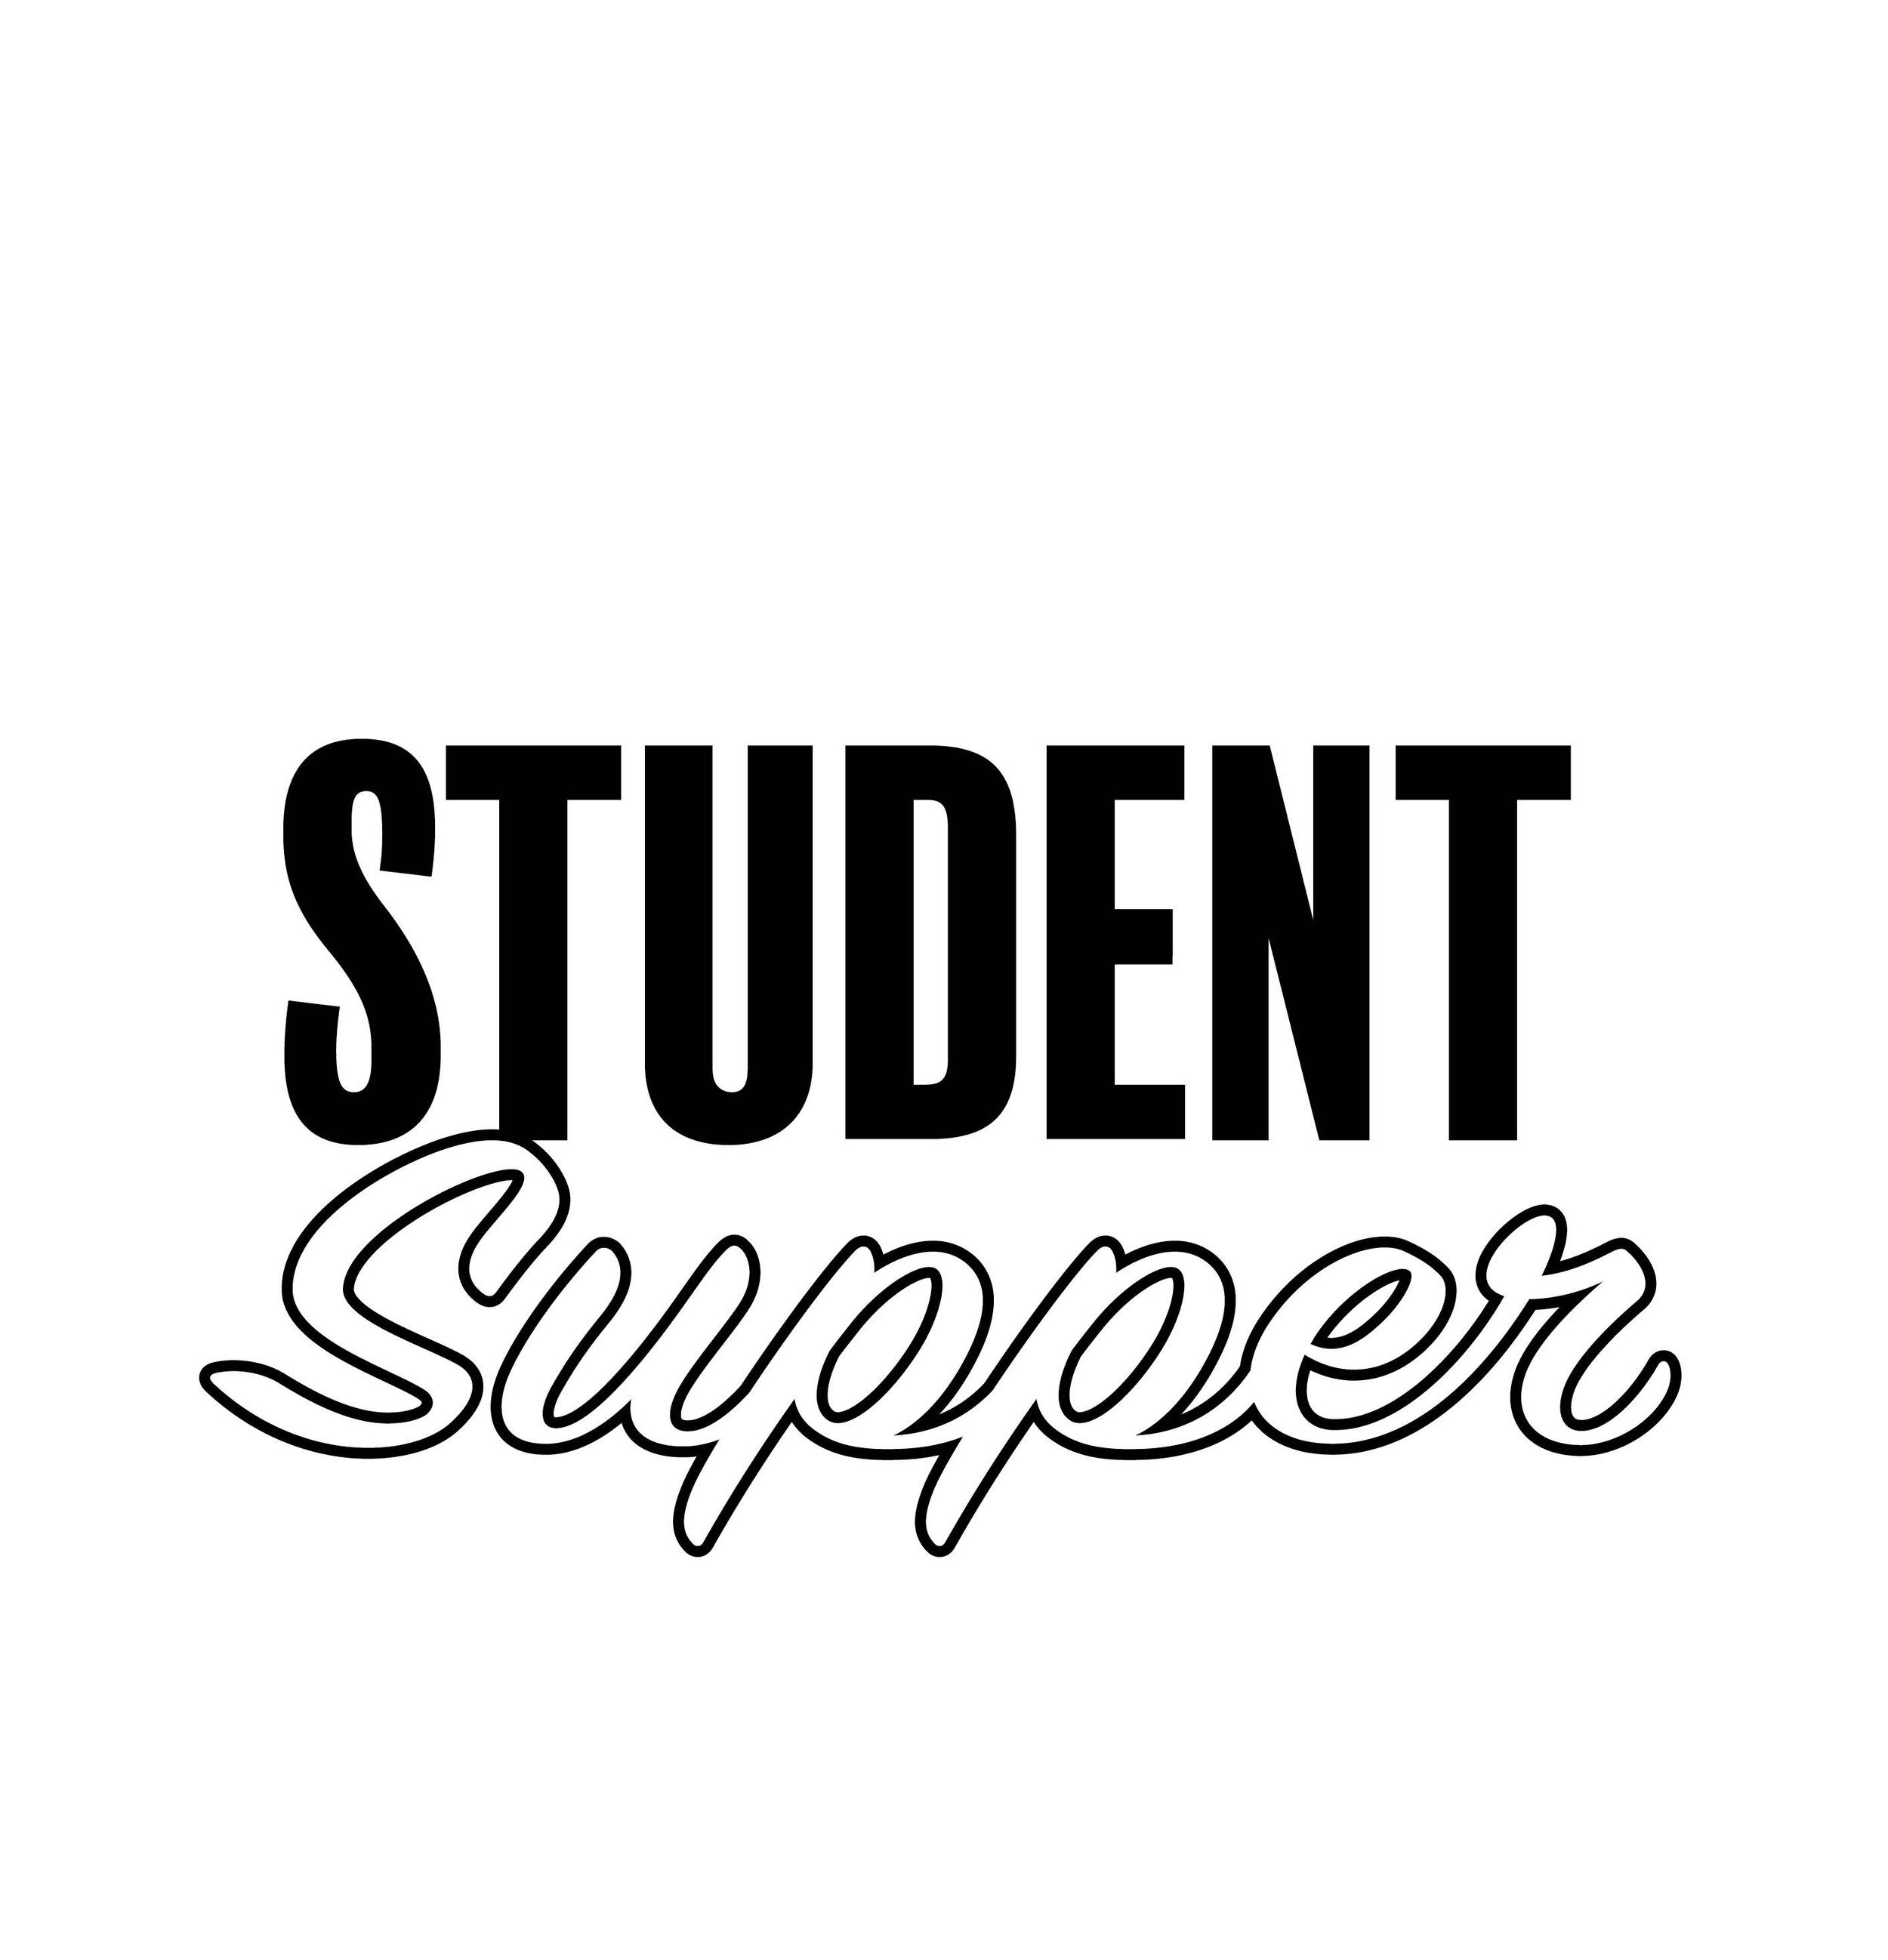 Student Supper Graphic.jpg